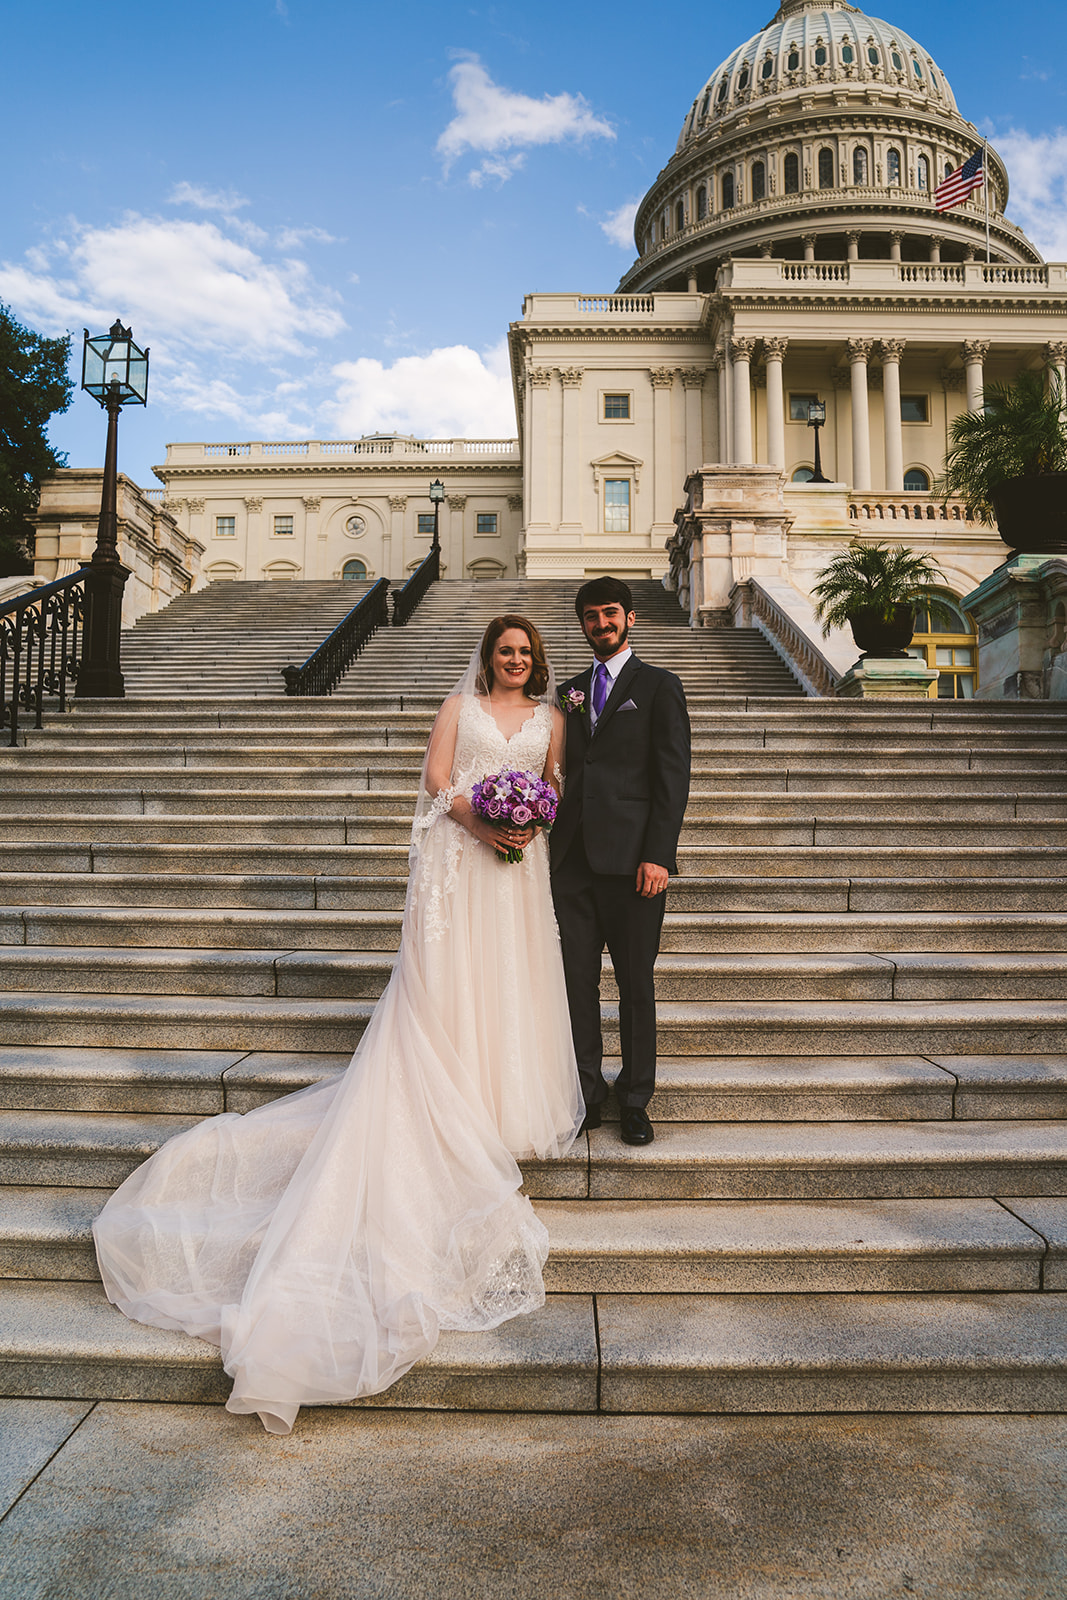 10-20-18-Katy-Kevin-Wedding-Embassy_Suites-Alexandria-VA-1455_websize.jpg